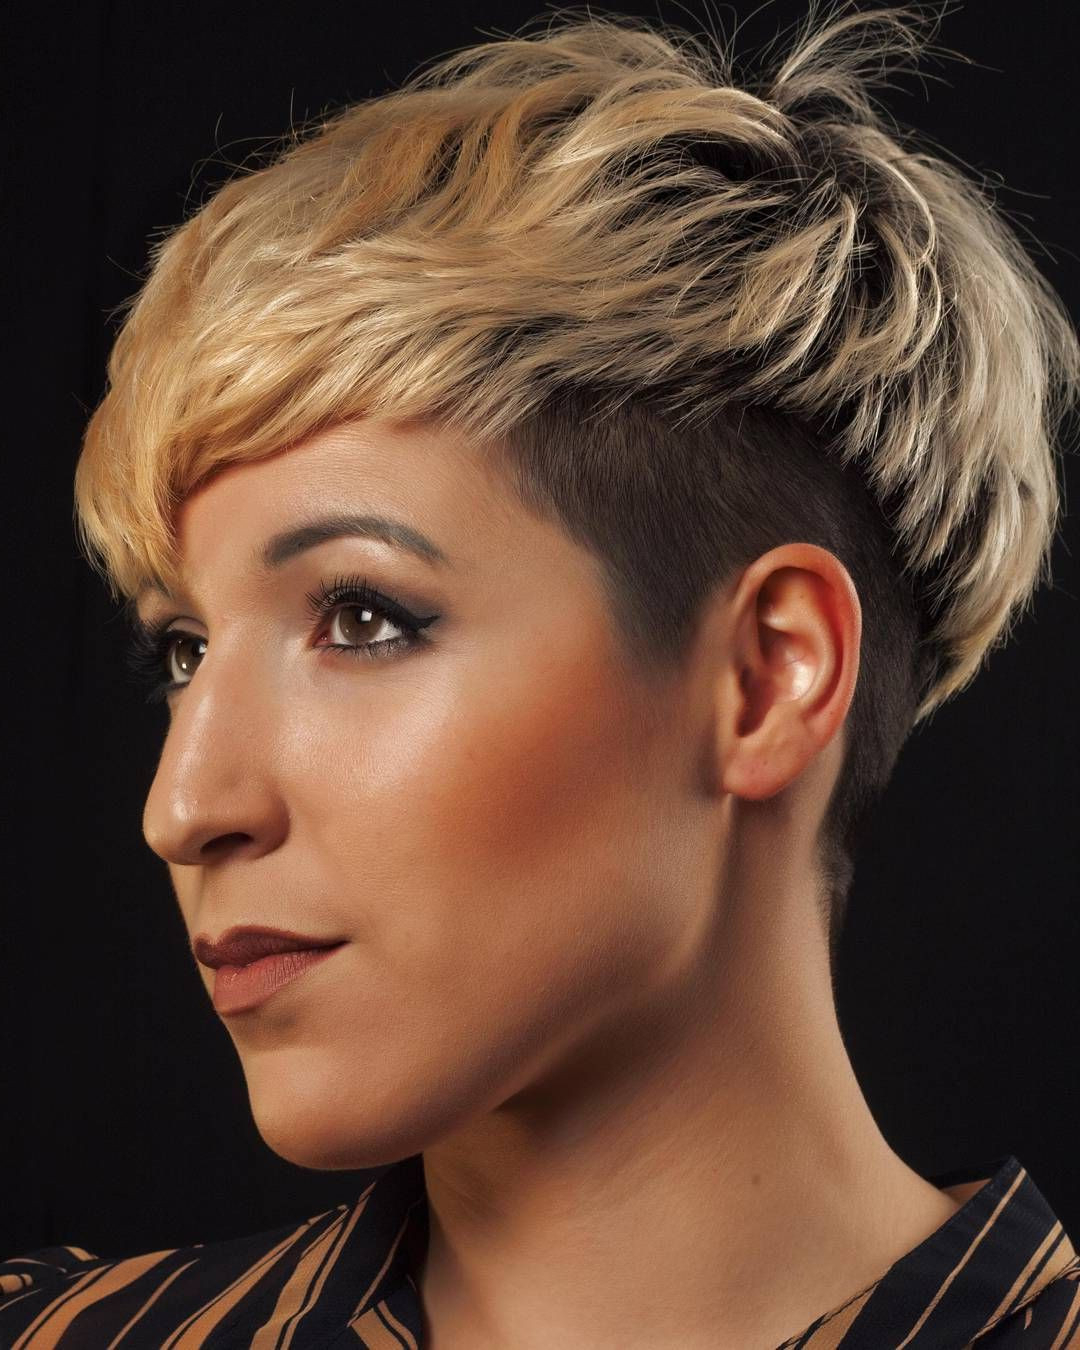 Black Short Pixie Hairstyles 2016 Awesome Women Haircuts Over 40 Within Black Short Layered Hairstyles (View 24 of 25)